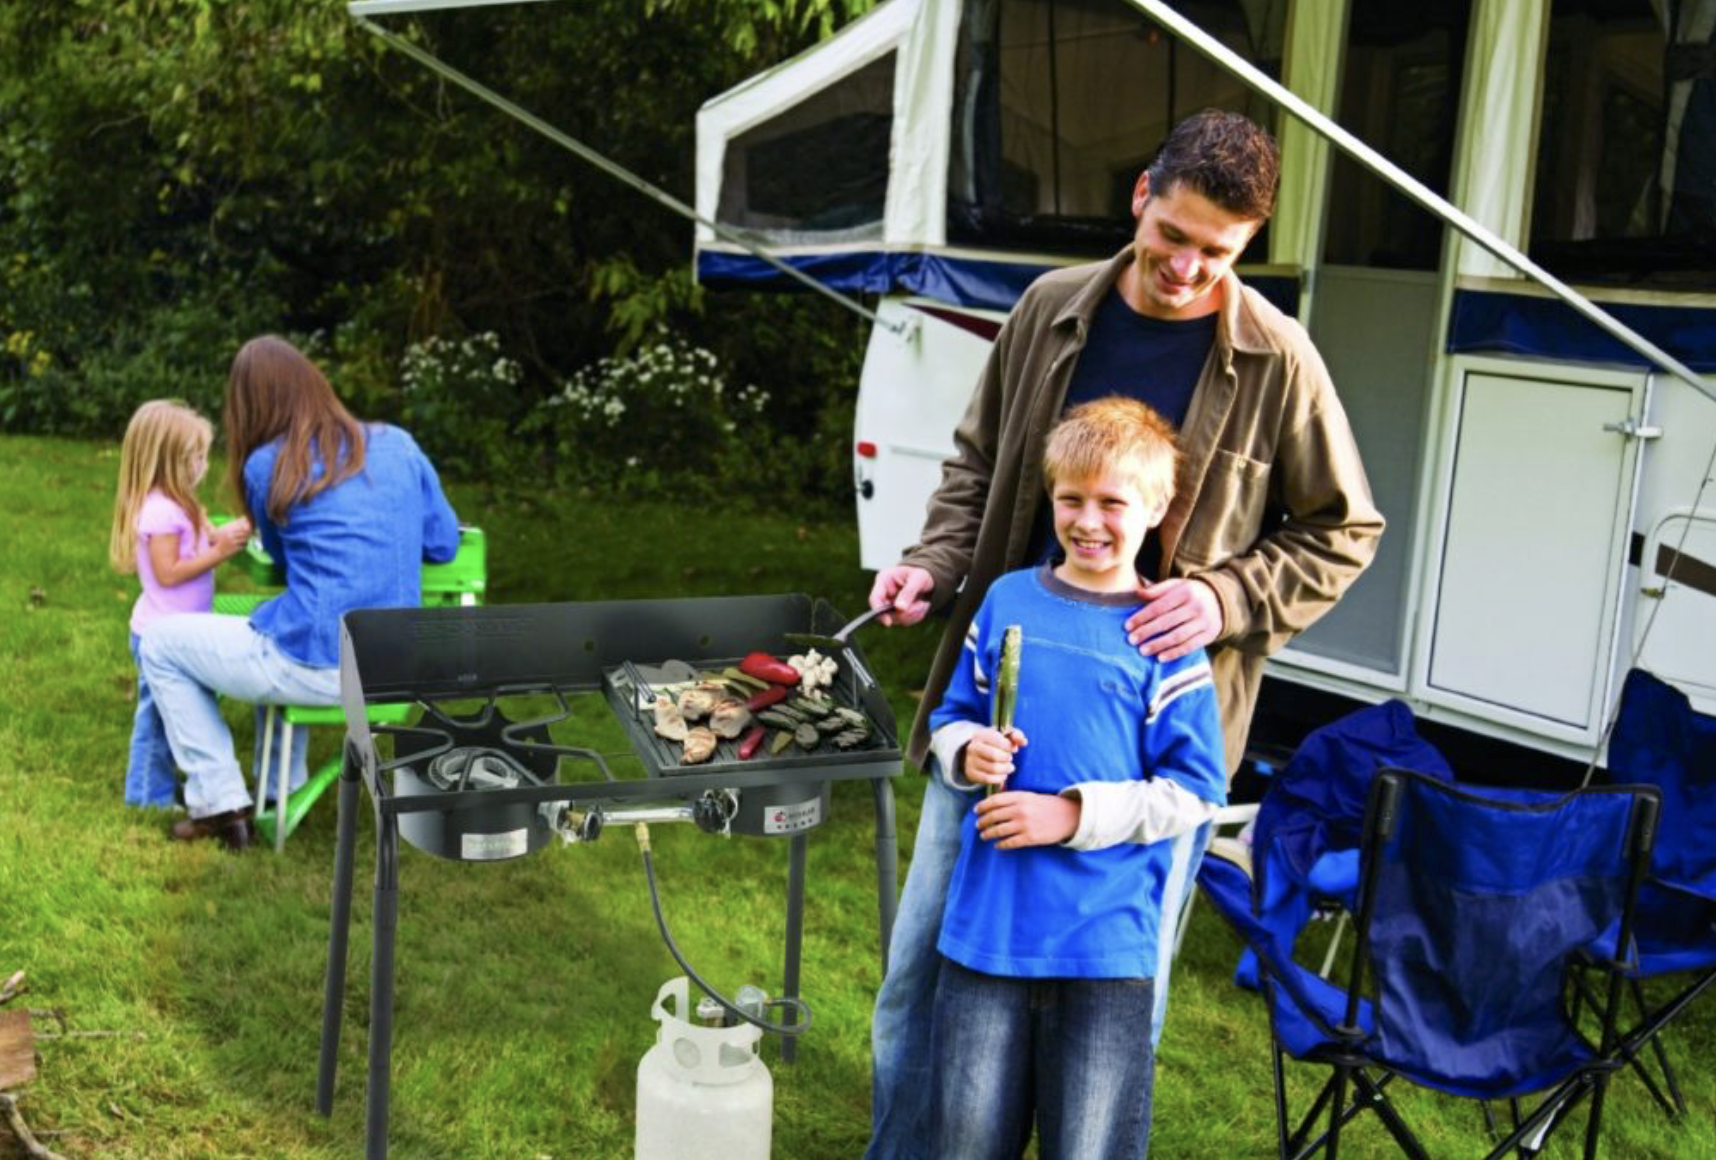 Outdoor cooking - is part of outdoor life, such as camping,hiking or cruising on small craft.